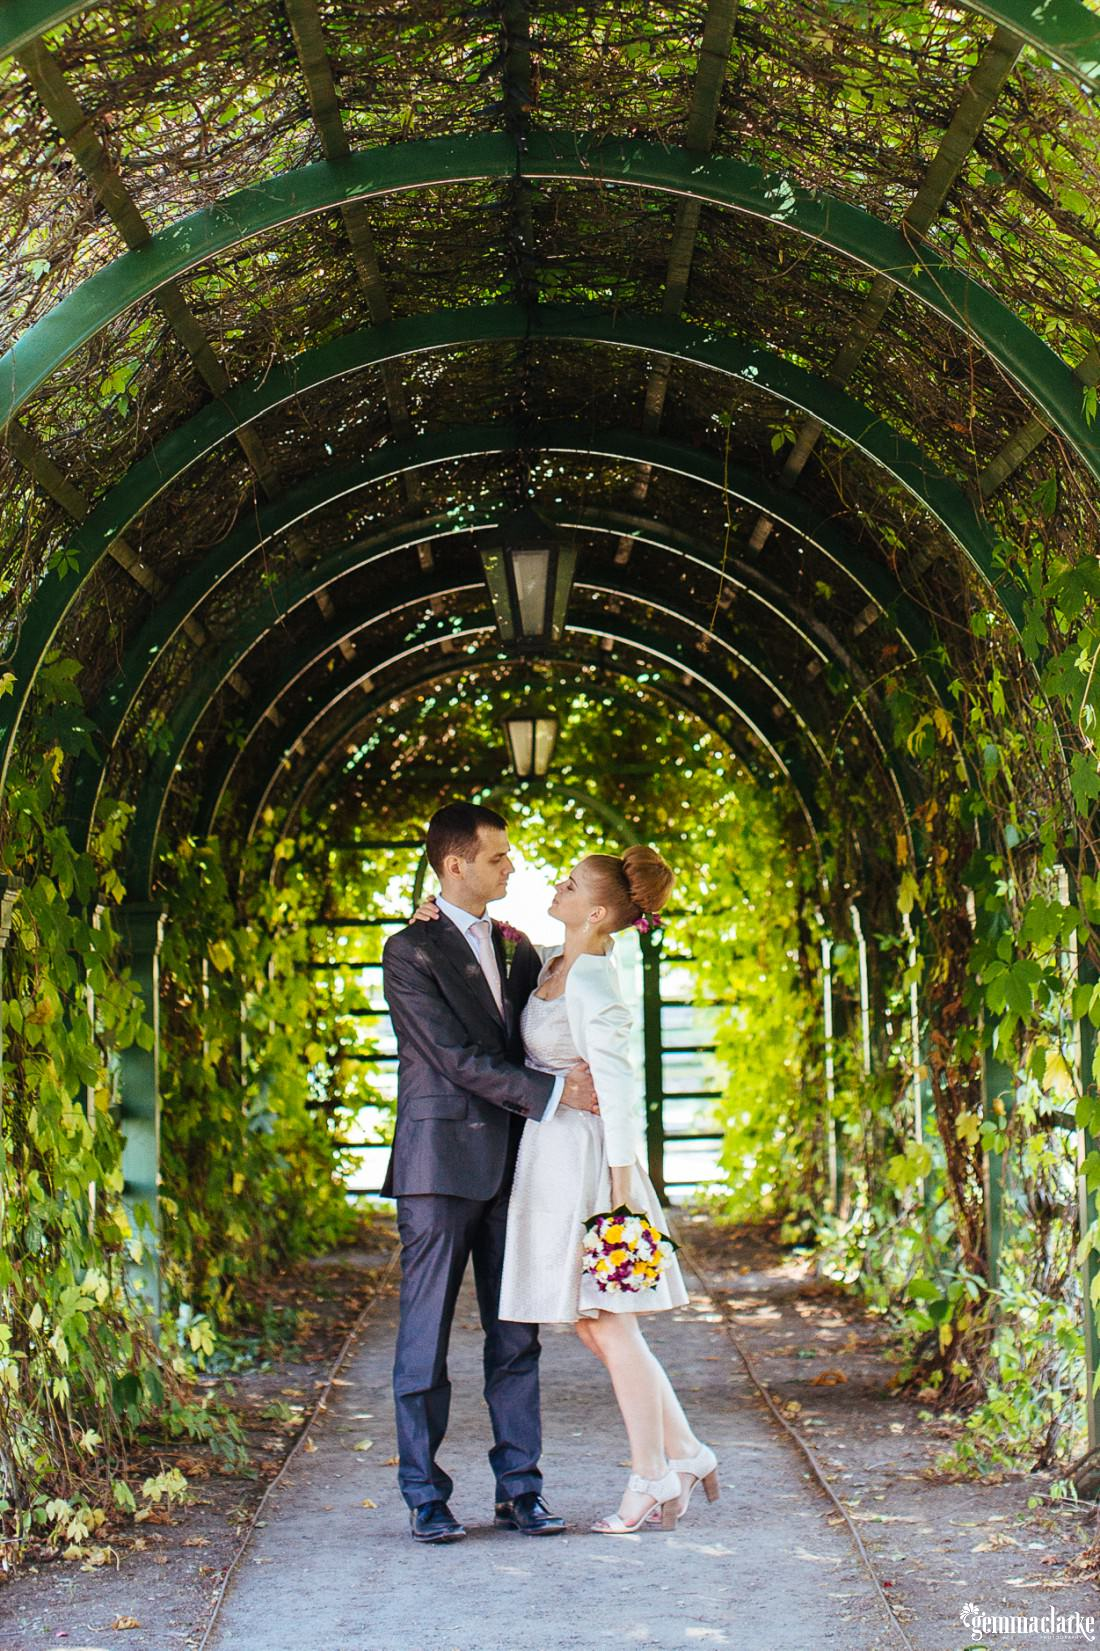 gemmaclarkephotography_elopement-in-europe_small-wedding-tallinn_teele-and-kristen_0053